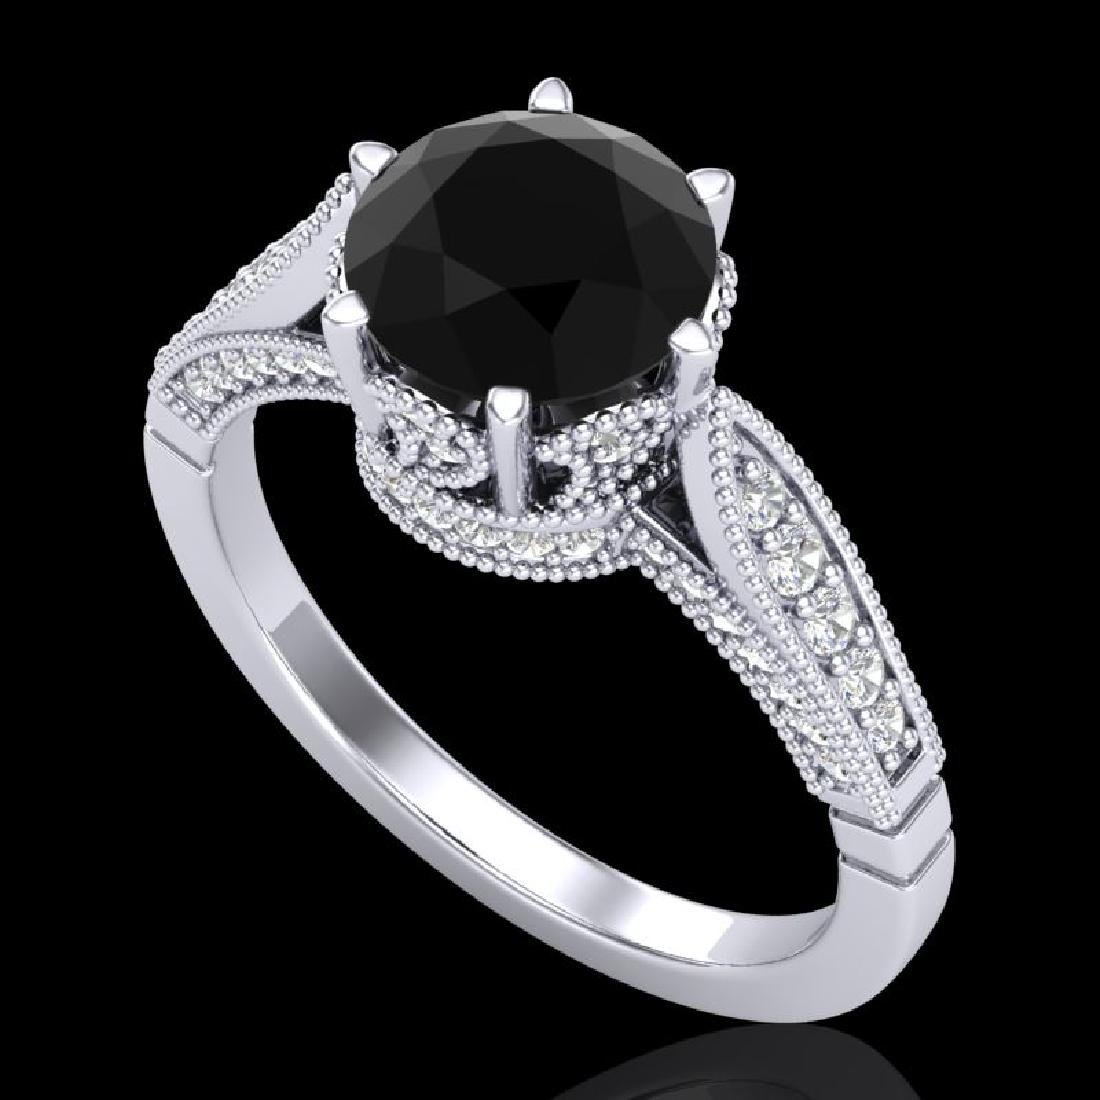 2.2 CTW Fancy Black Diamond Solitaire Engagement Art